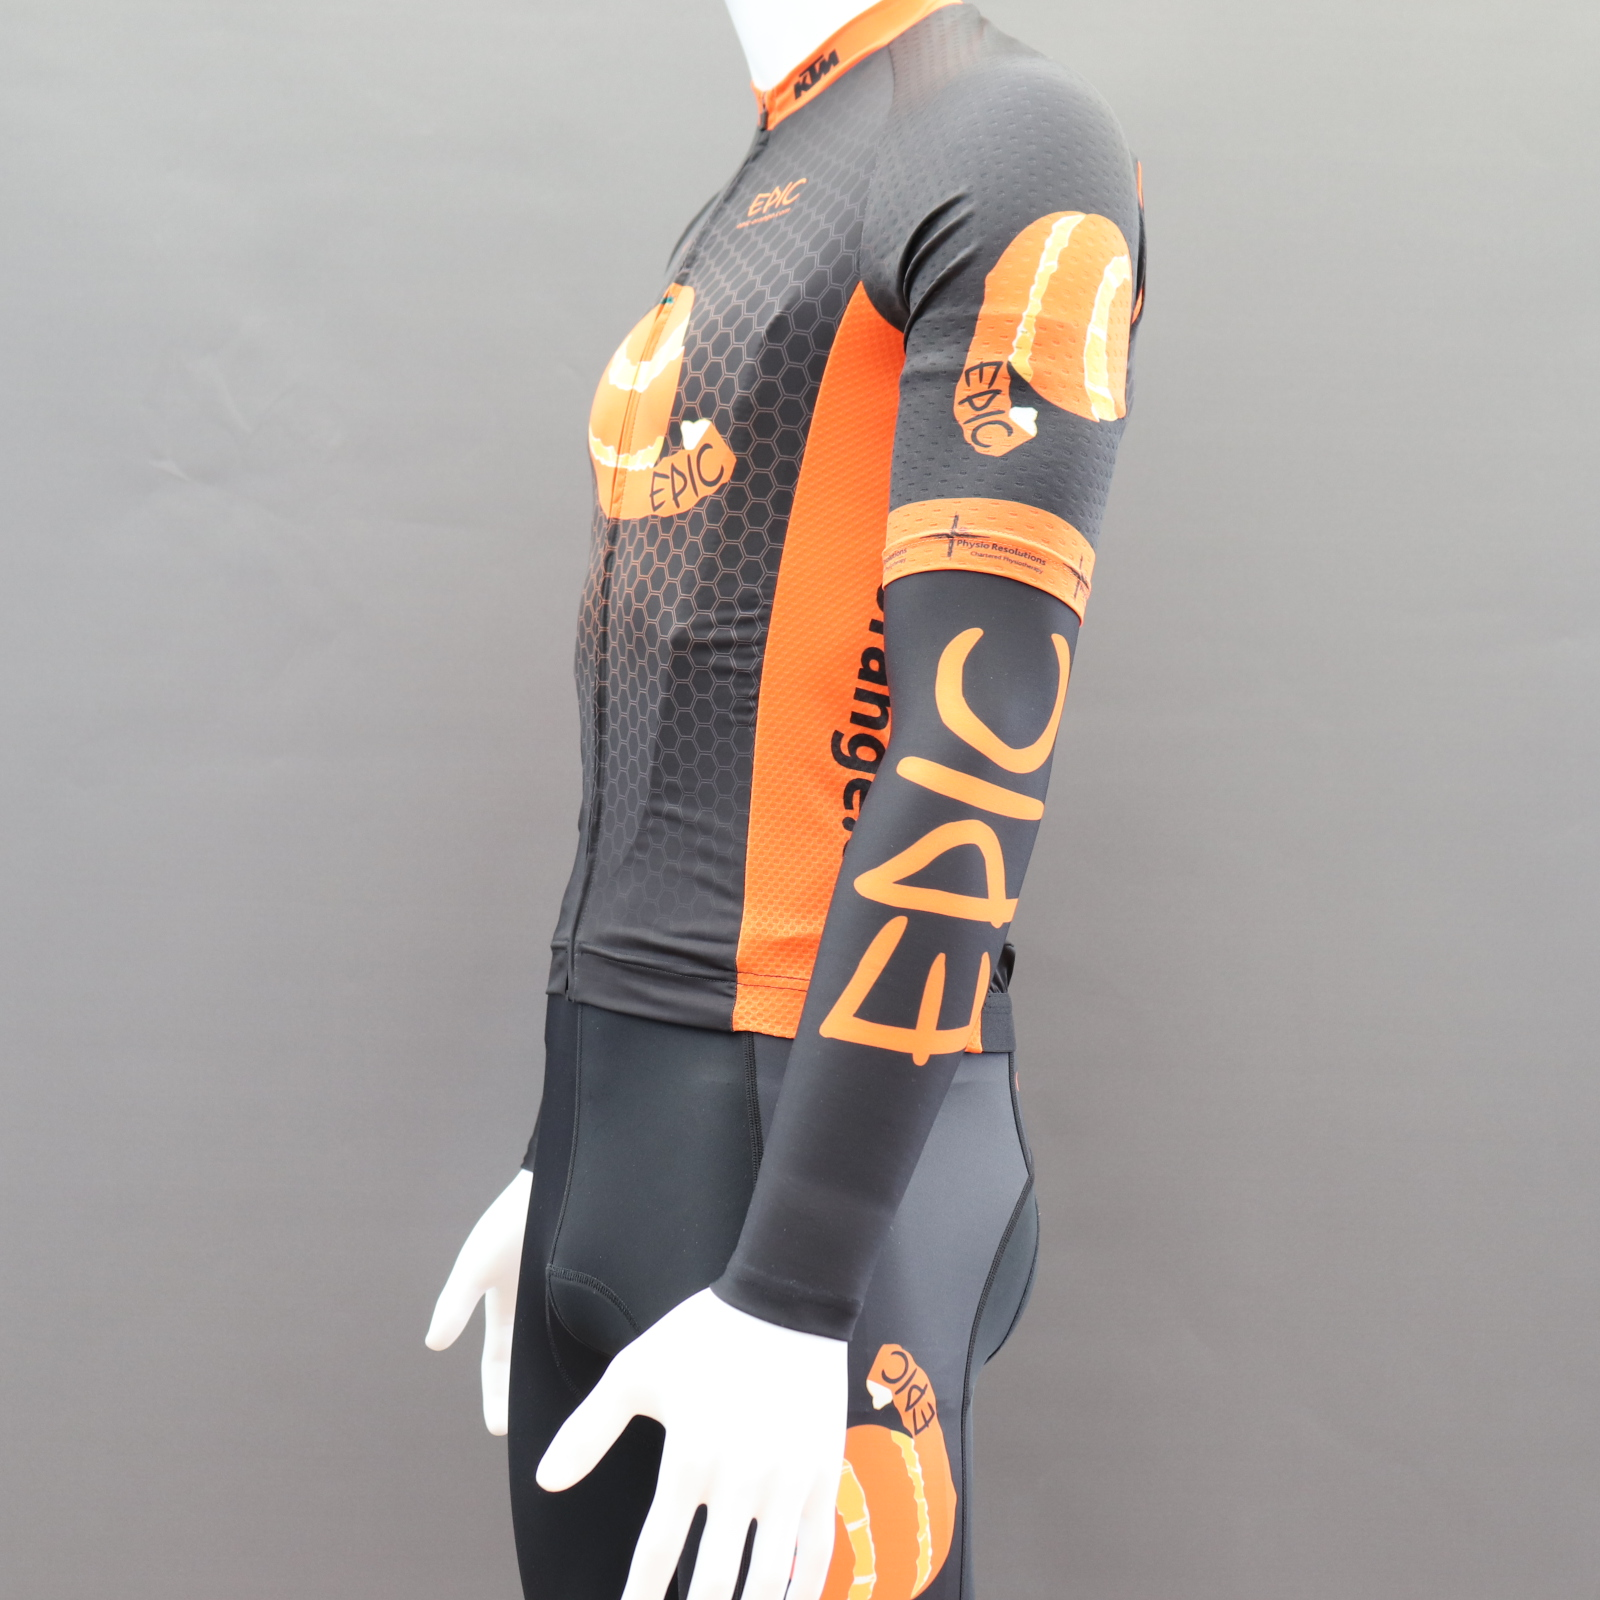 Custom Roubaix Lined Cycle Arm Warmers